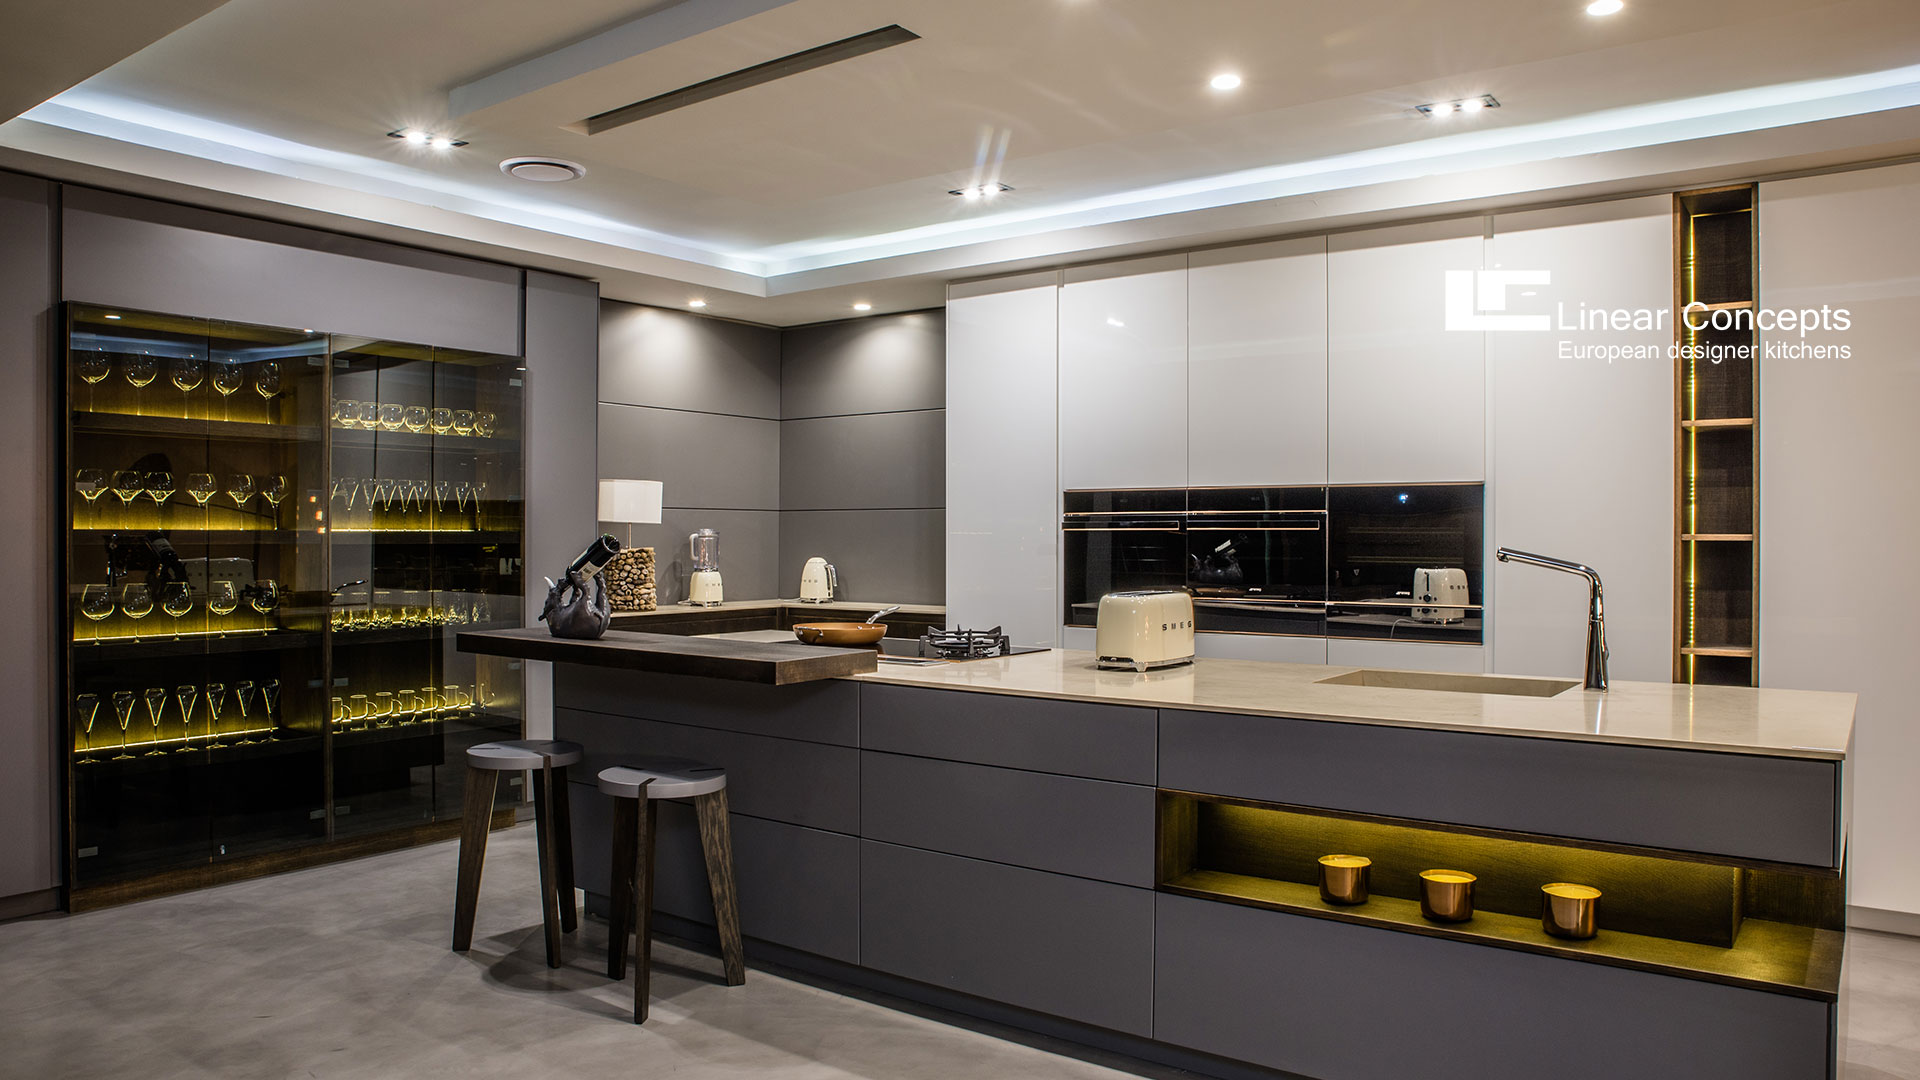 Kitchen Design Images Kitchens Linear Concepts Kitchens Portfolio Ernestomeda